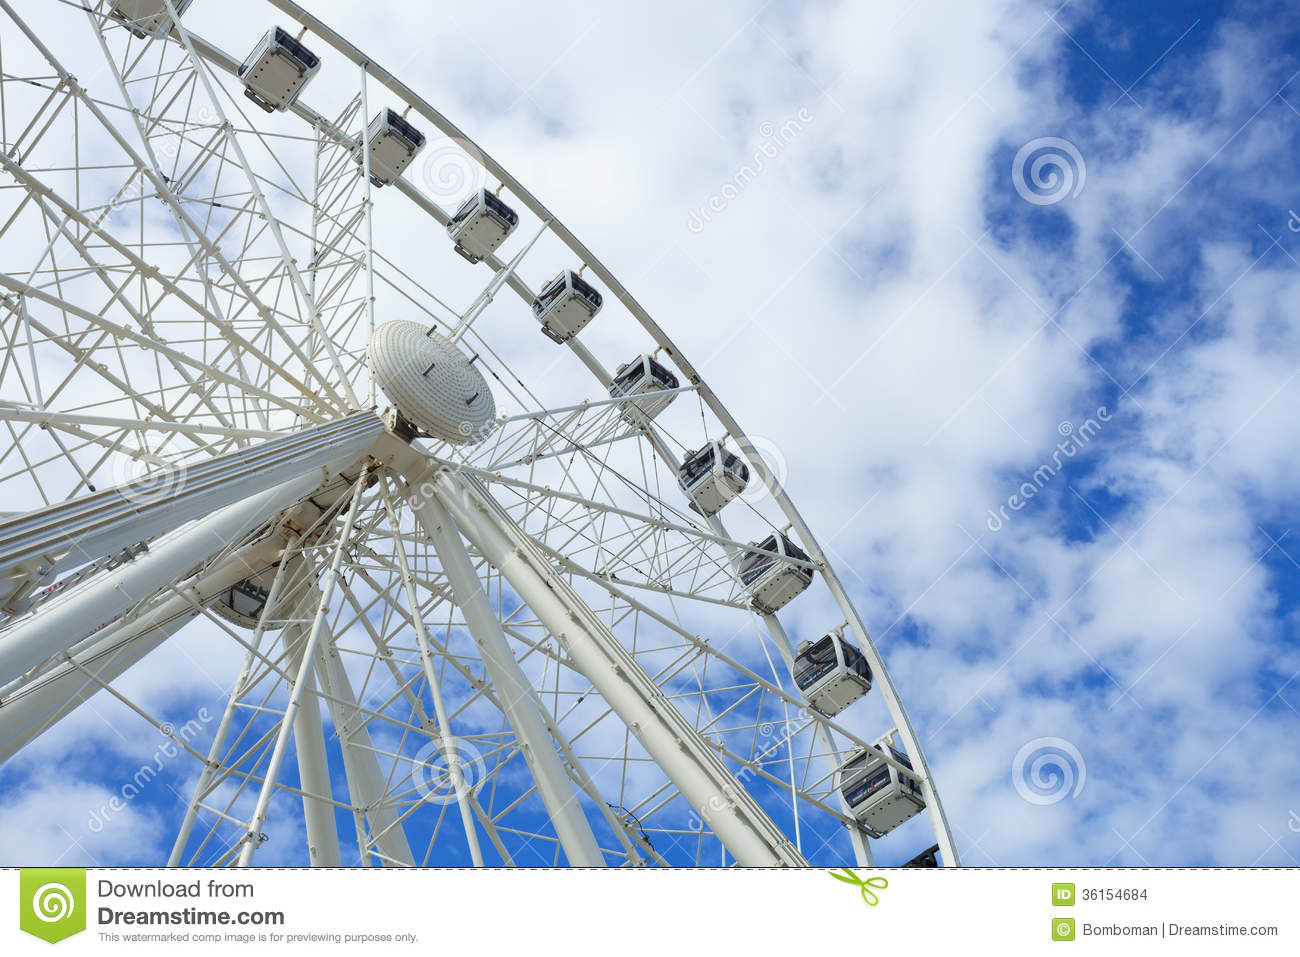 Cape Wheel Of Excellence Beautiful Large White Ferris Wheel.